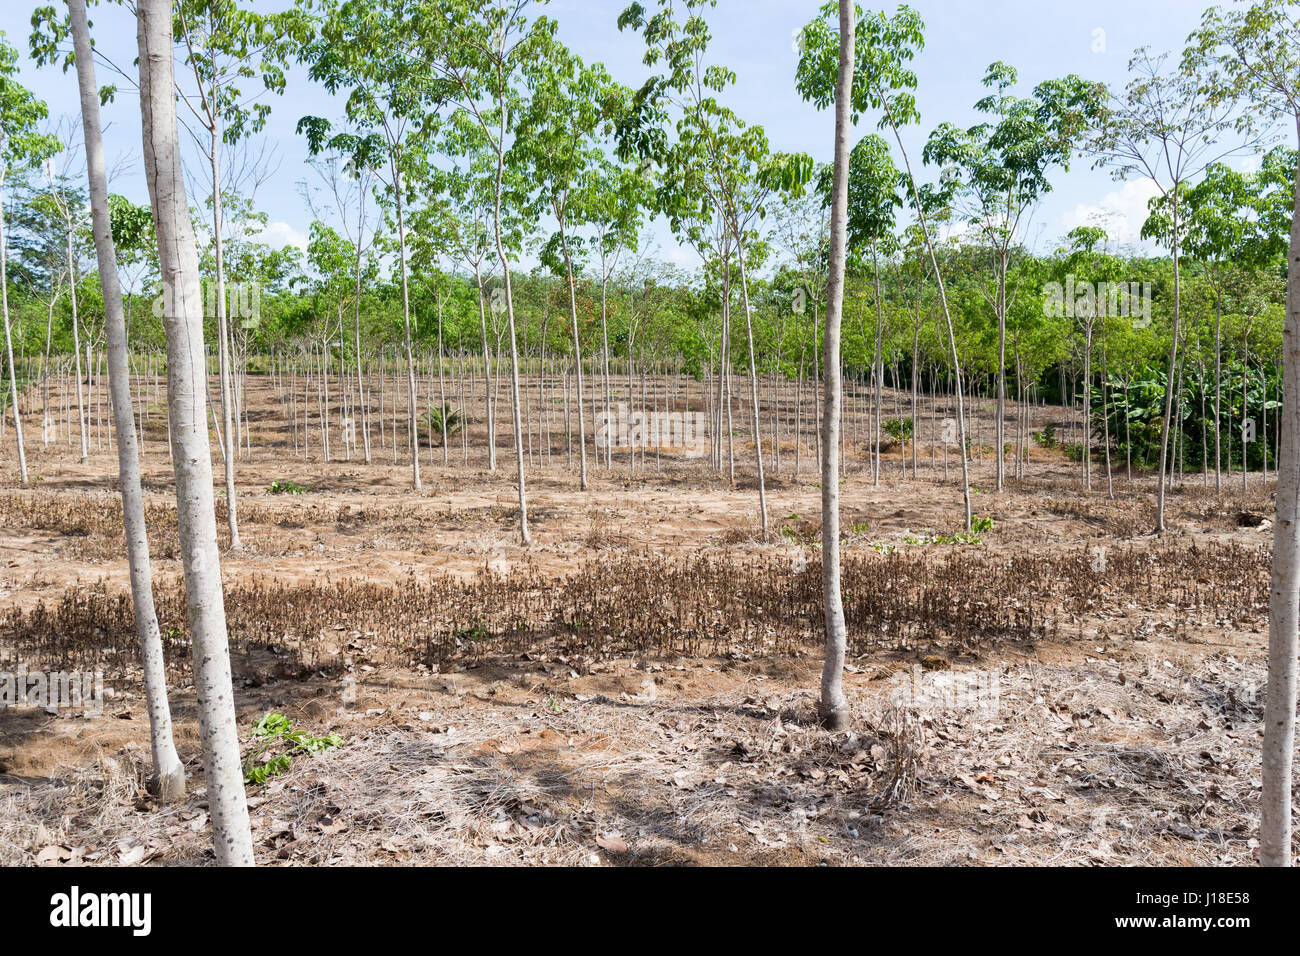 Young rubber tree plantation, Phuket, Thailand - Stock Image